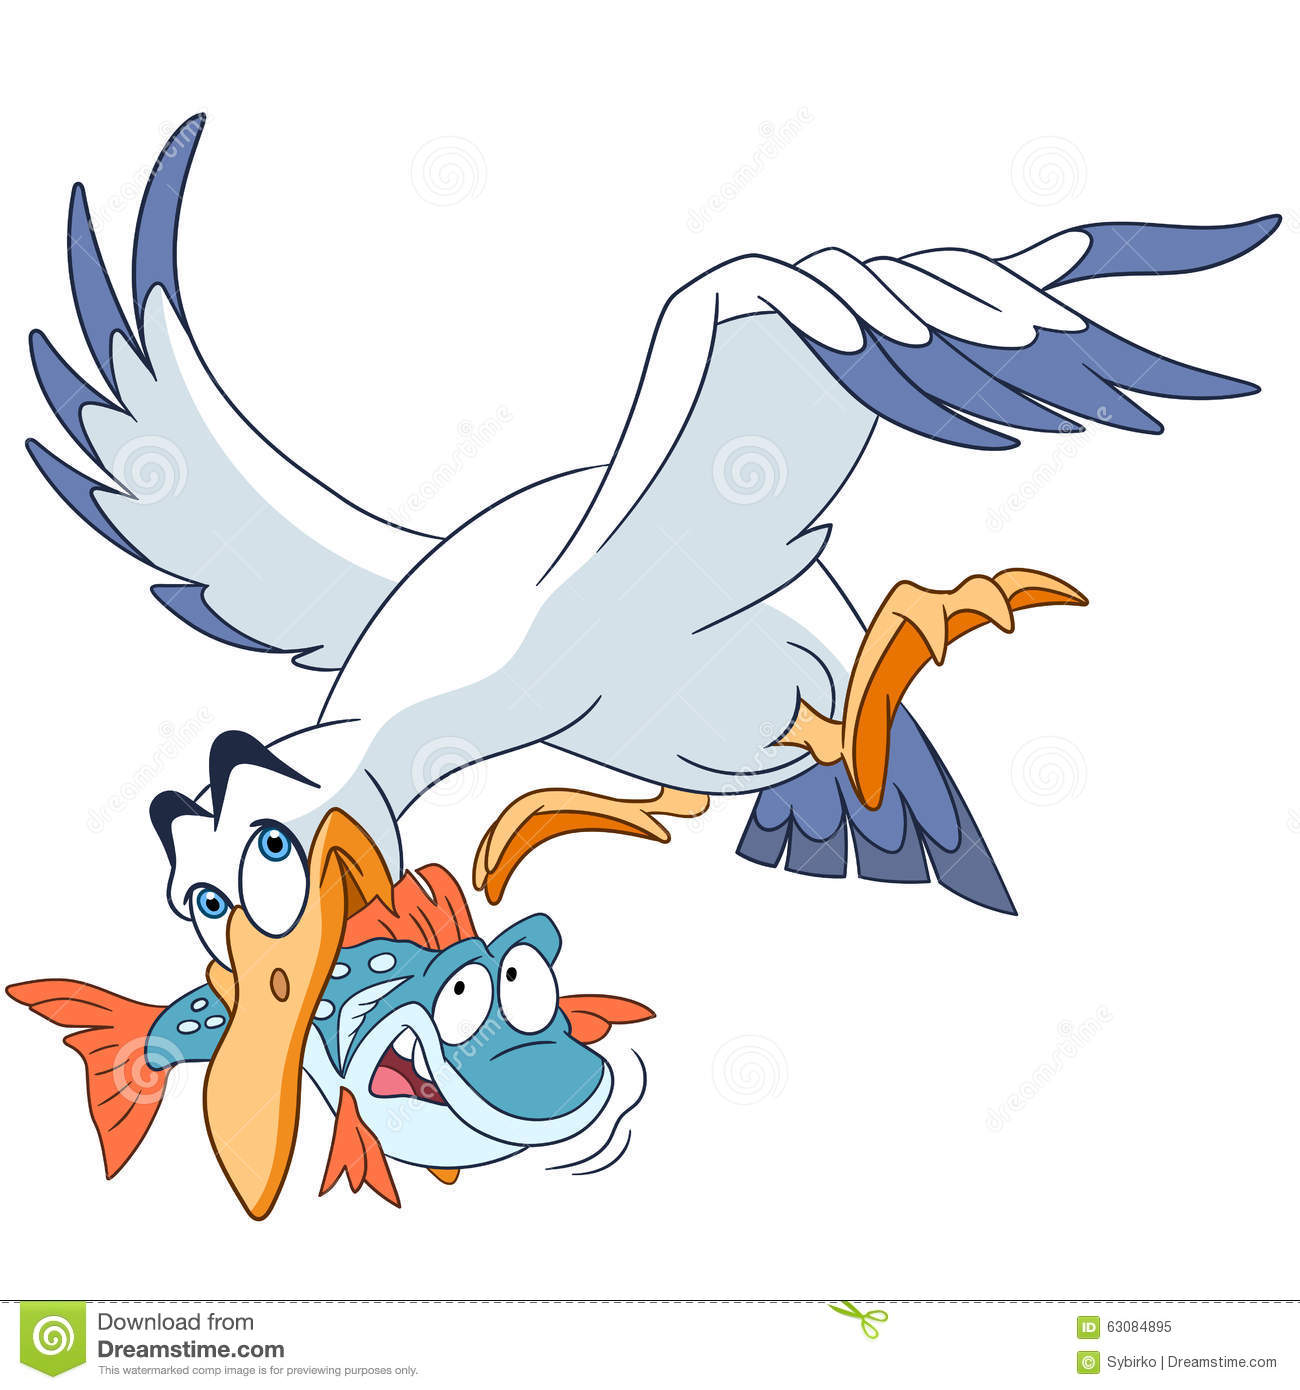 little plane cartoon with Stock Illustration Cute Flying Cartoon Seagull Fish Happy Carrying Beak Image63084895 on Airplane Adventure Thank You Notes as well Stock Illustration Cute Flying Cartoon Seagull Fish Happy Carrying Beak Image63084895 likewise Black And White Cartoon Plane together with Alfonso Does The Carlton In Places Youve Only Dreamed Of besides Wow Toys.